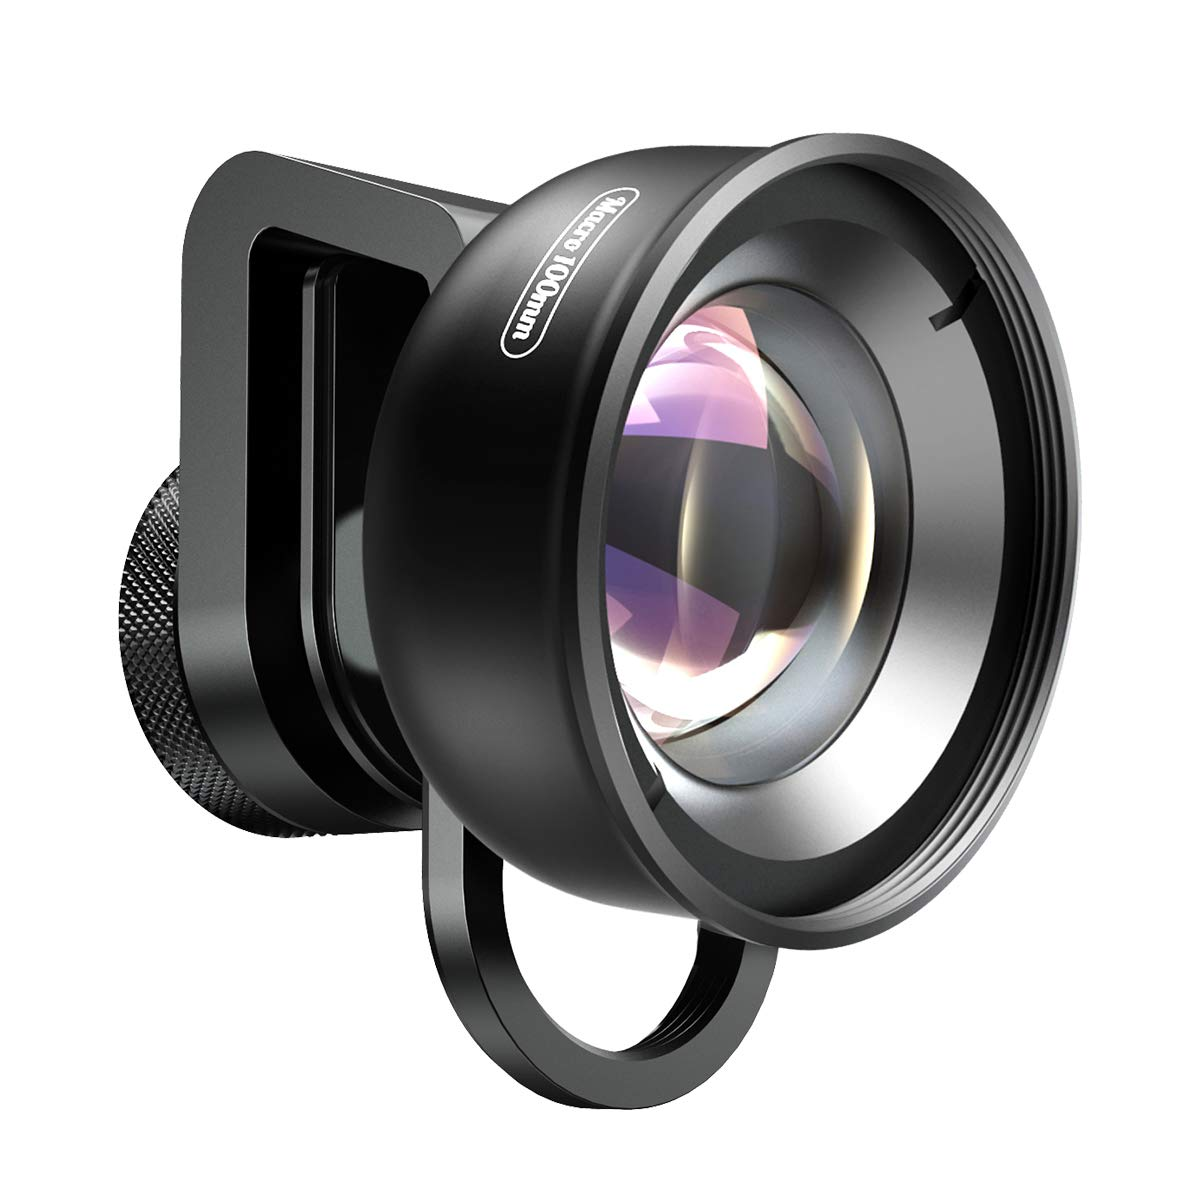 Apexel Professional Macro Photography Lens for Dual Lens/Single Lens iPhone,Pixel,Samsung Galaxy Smartphones by Apexel